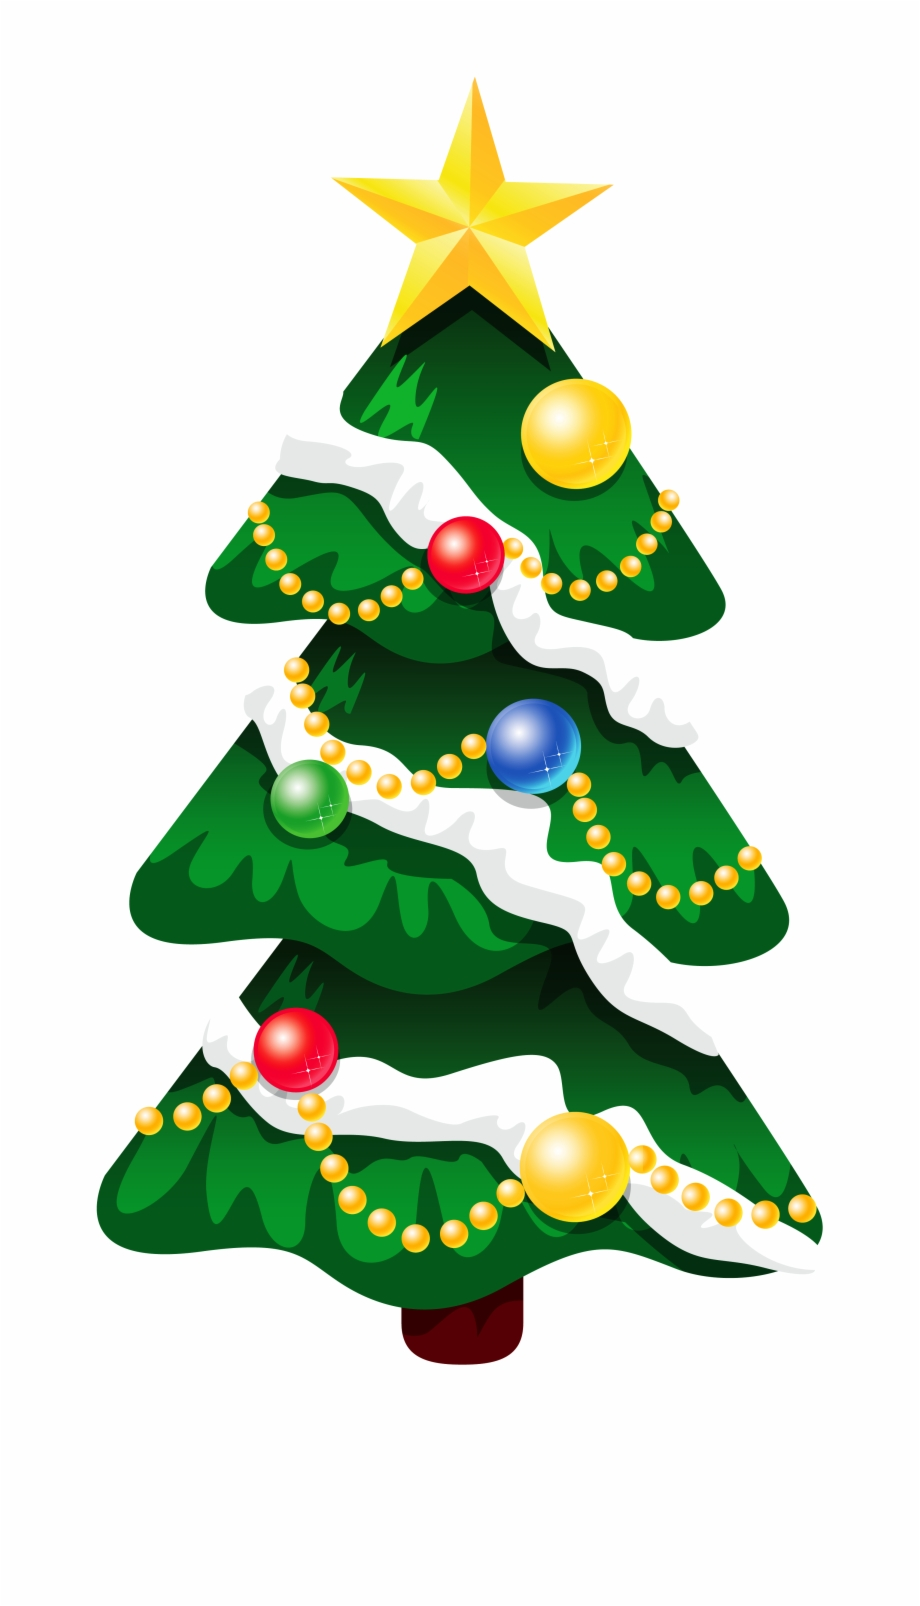 Transparent Snowy Deco Xmas Tree With Star Png Clipart.